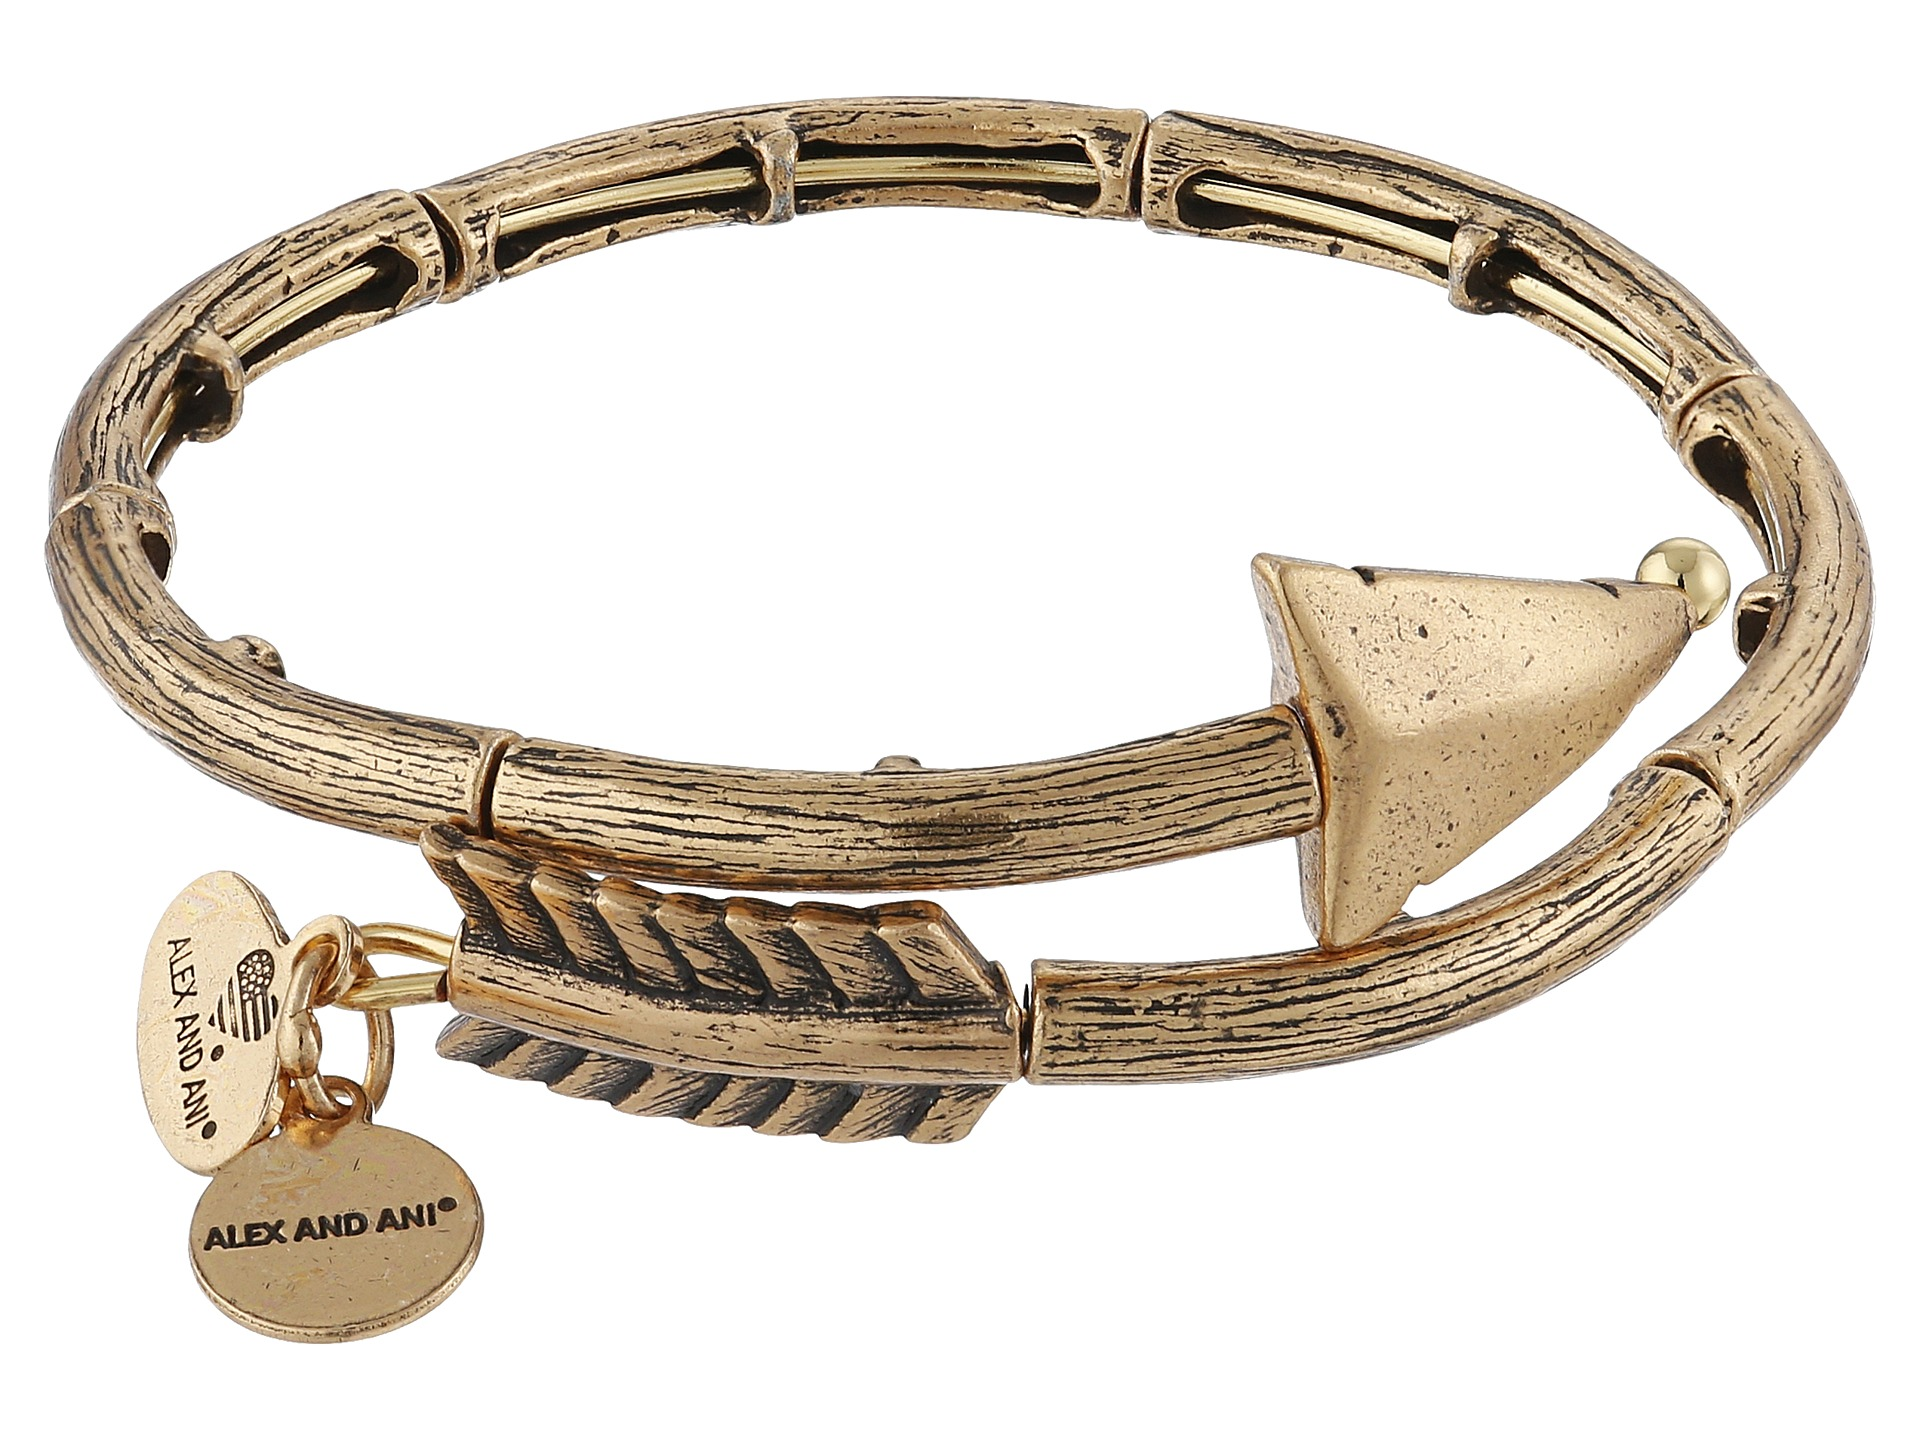 Alex and ani love struck arrow wrap bracelet gold zappos com free